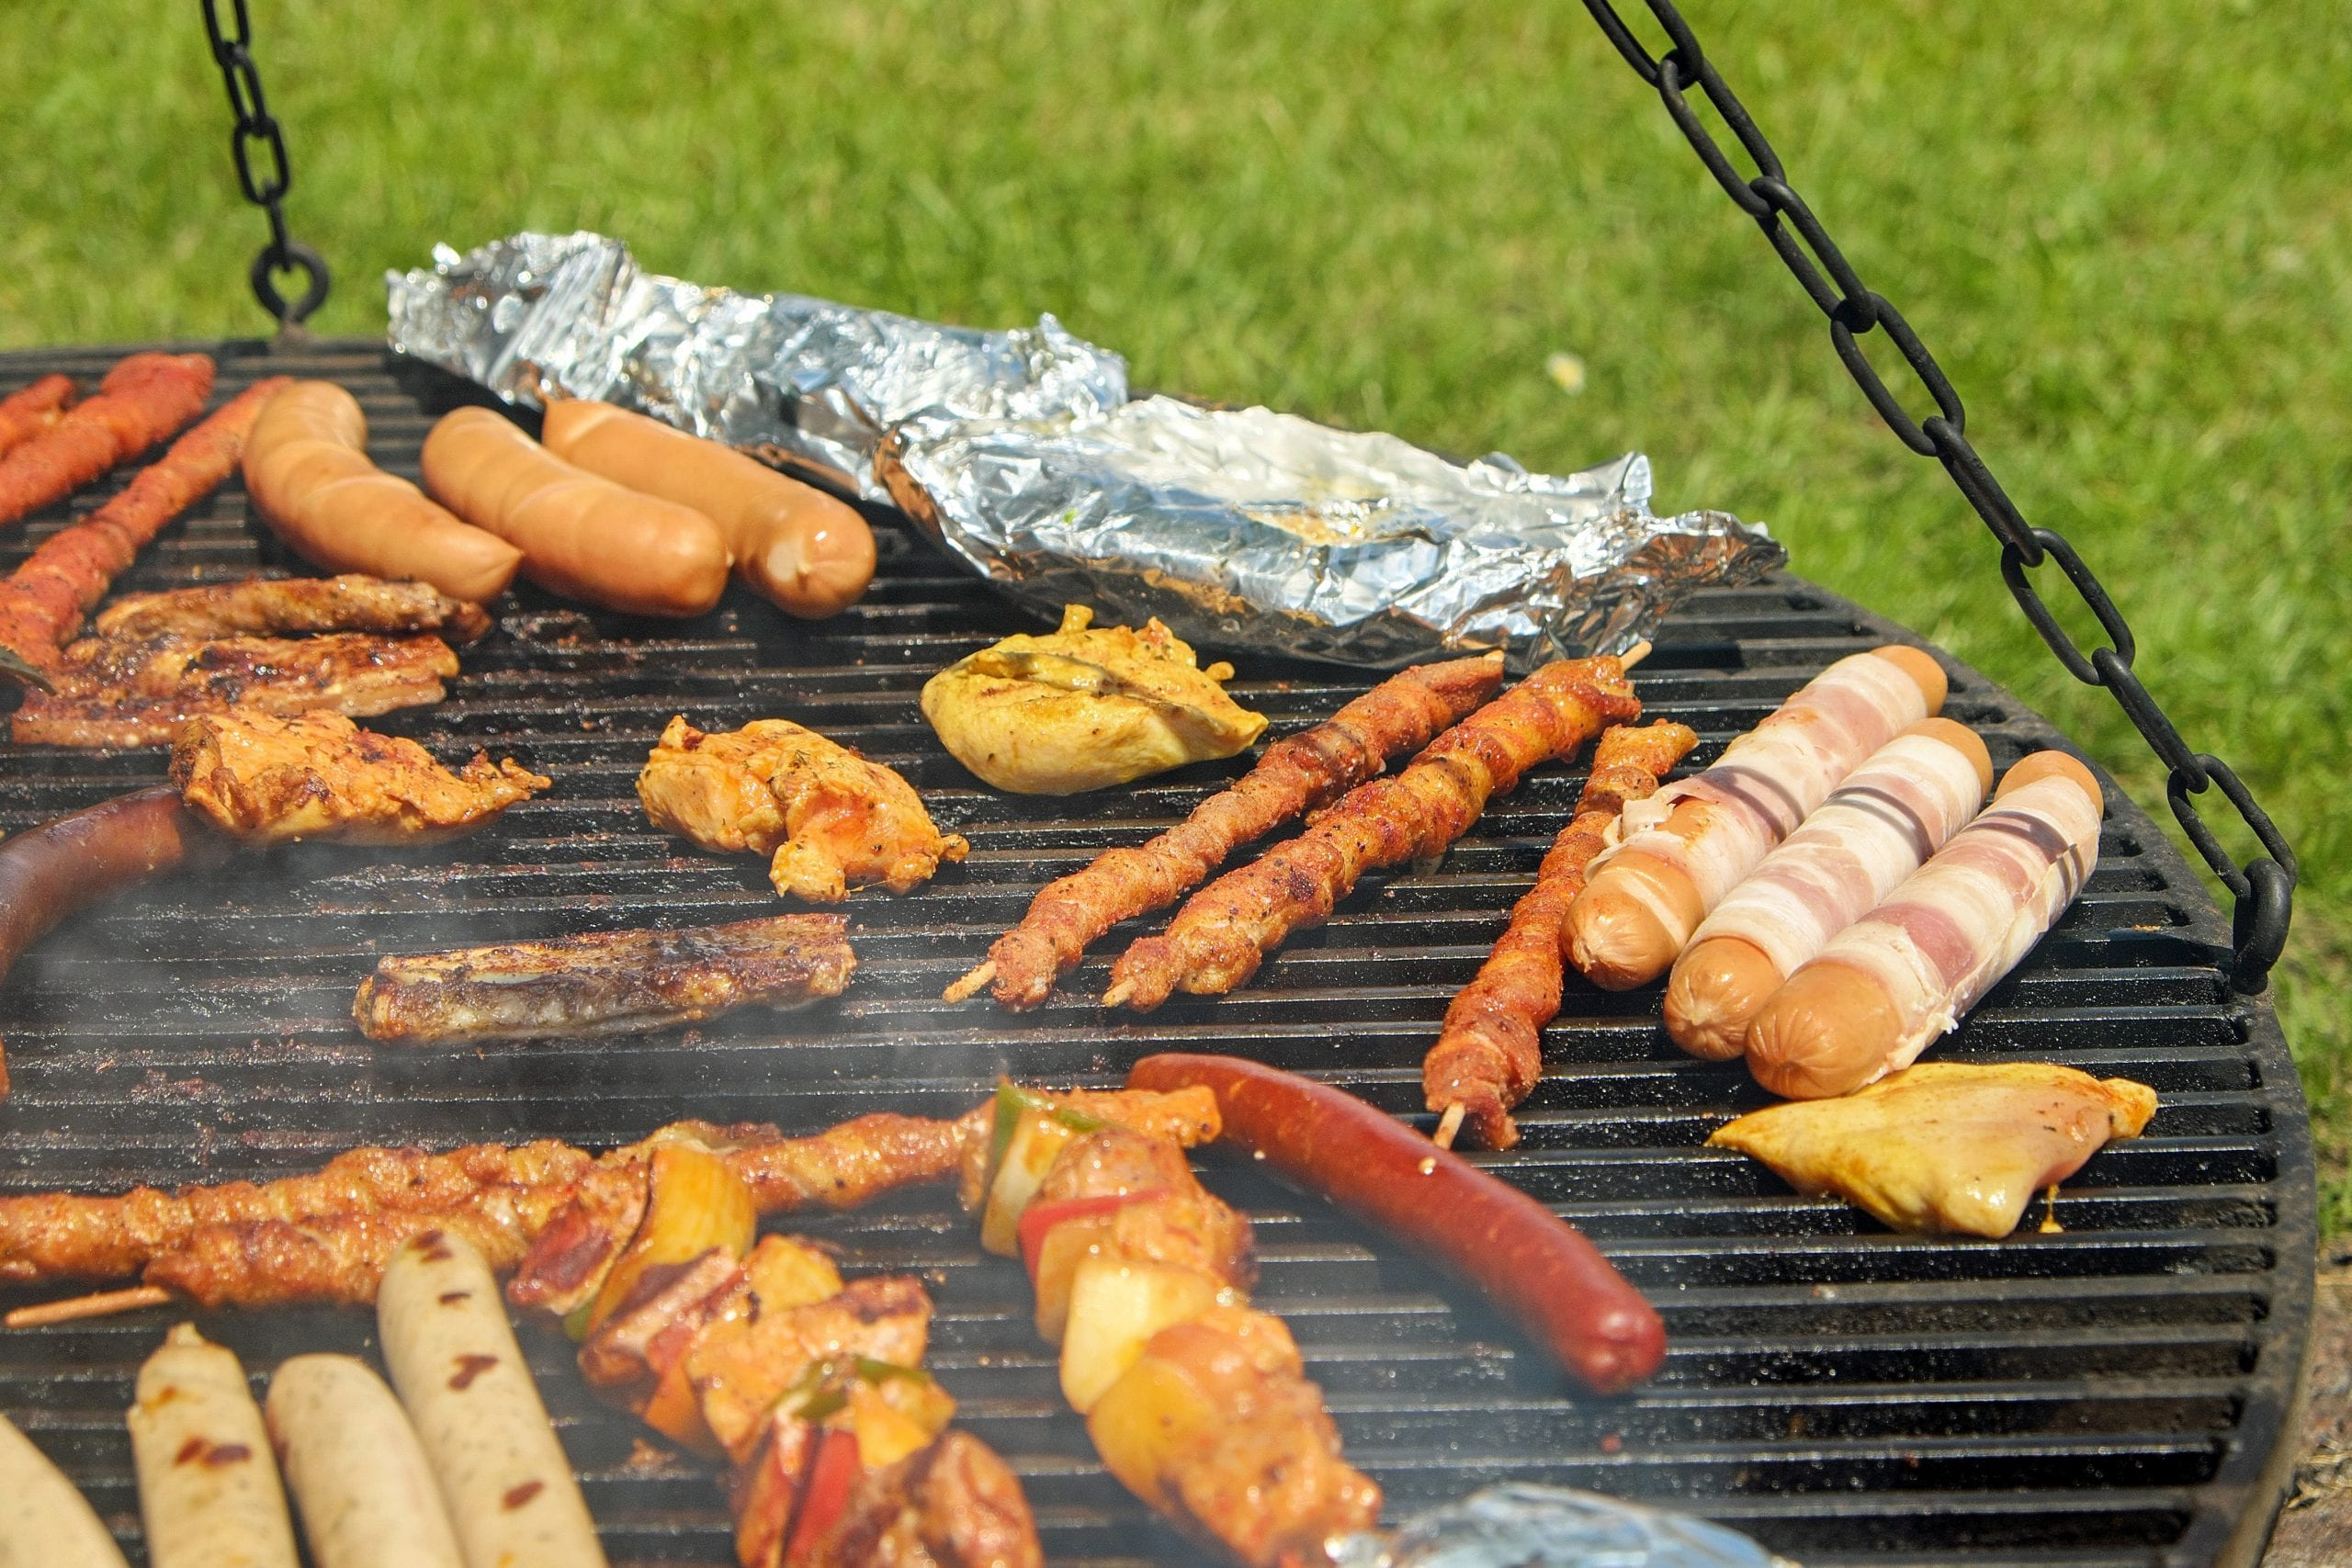 barbecue-meat-sausage-stockpack-pixabay.jpg